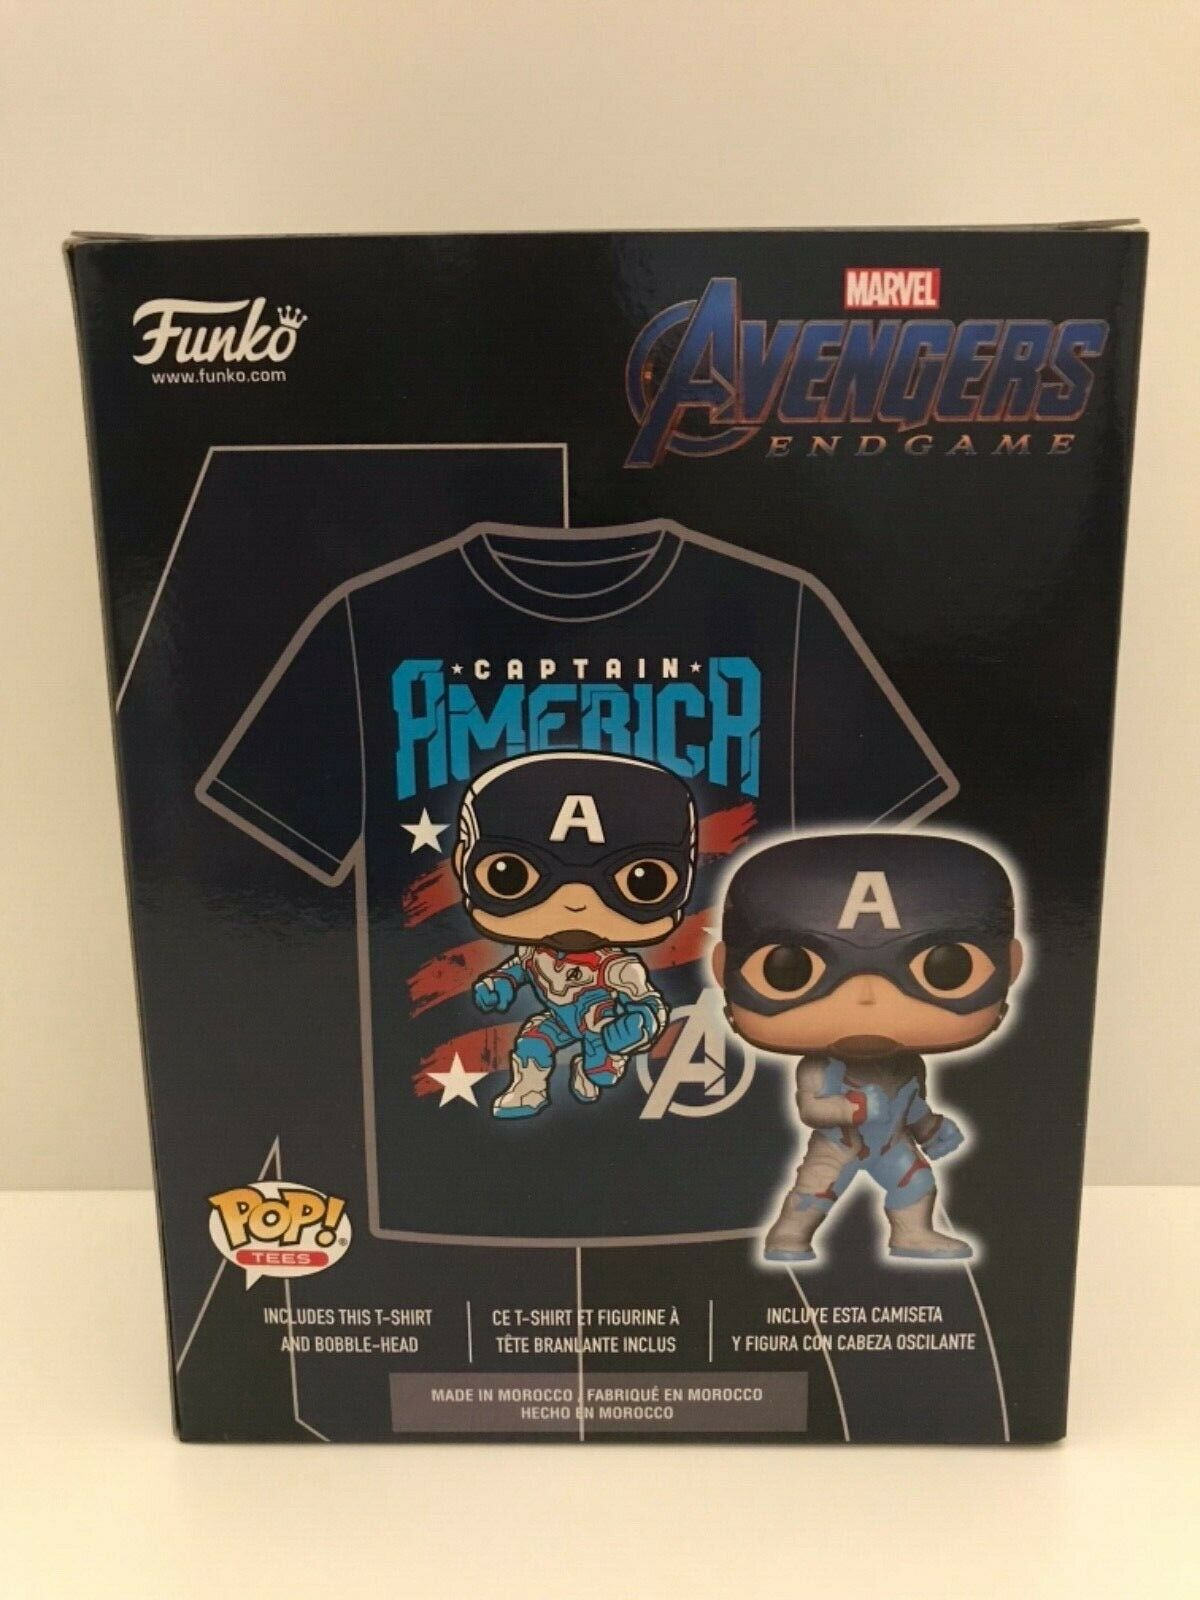 Captain America Funko Pop London MCM Comic Con Exclusive With Medium T-shirt